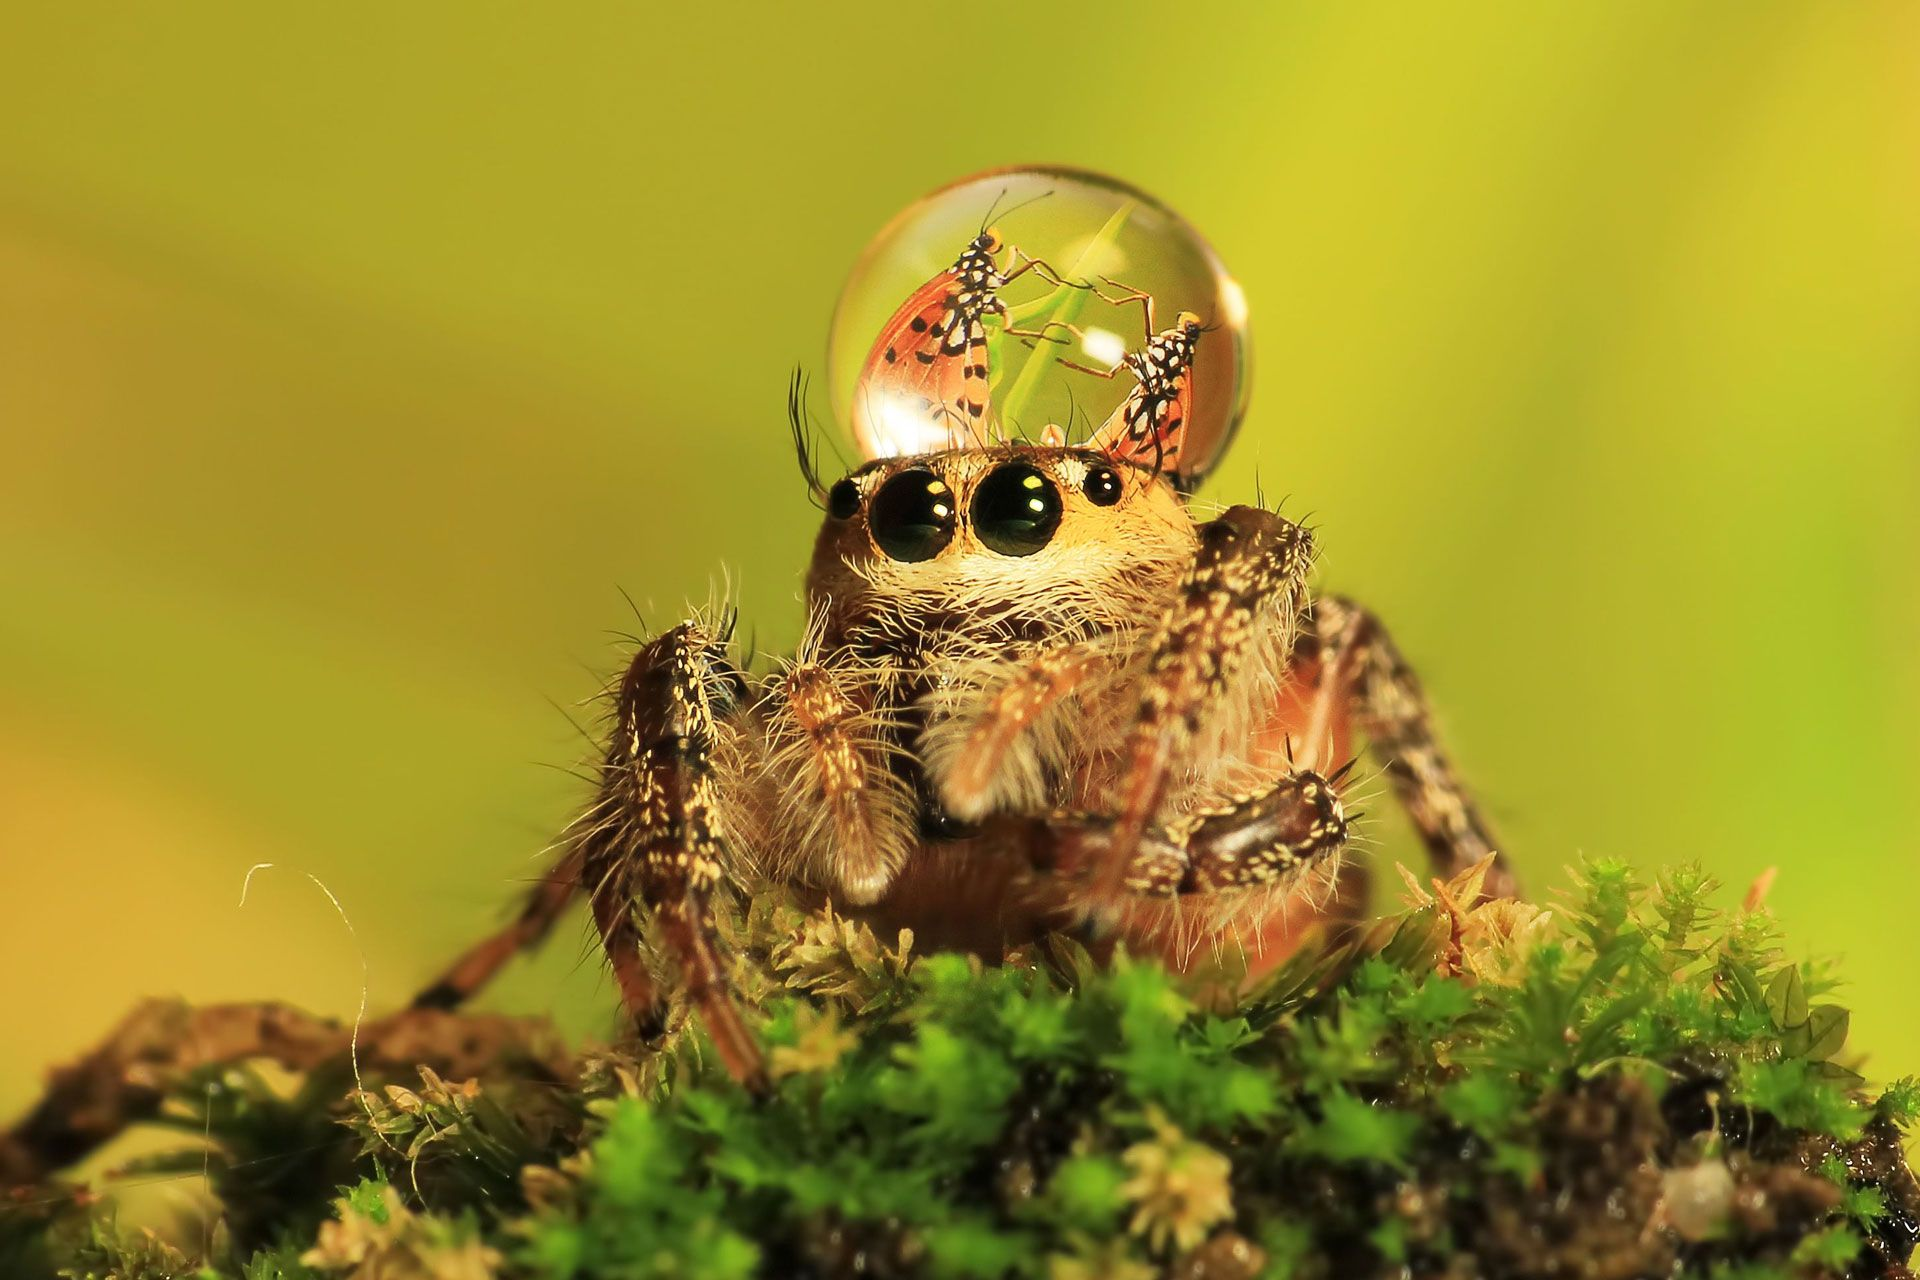 Wired Aperture for 20 July: Incredible raindrops on spiders ...